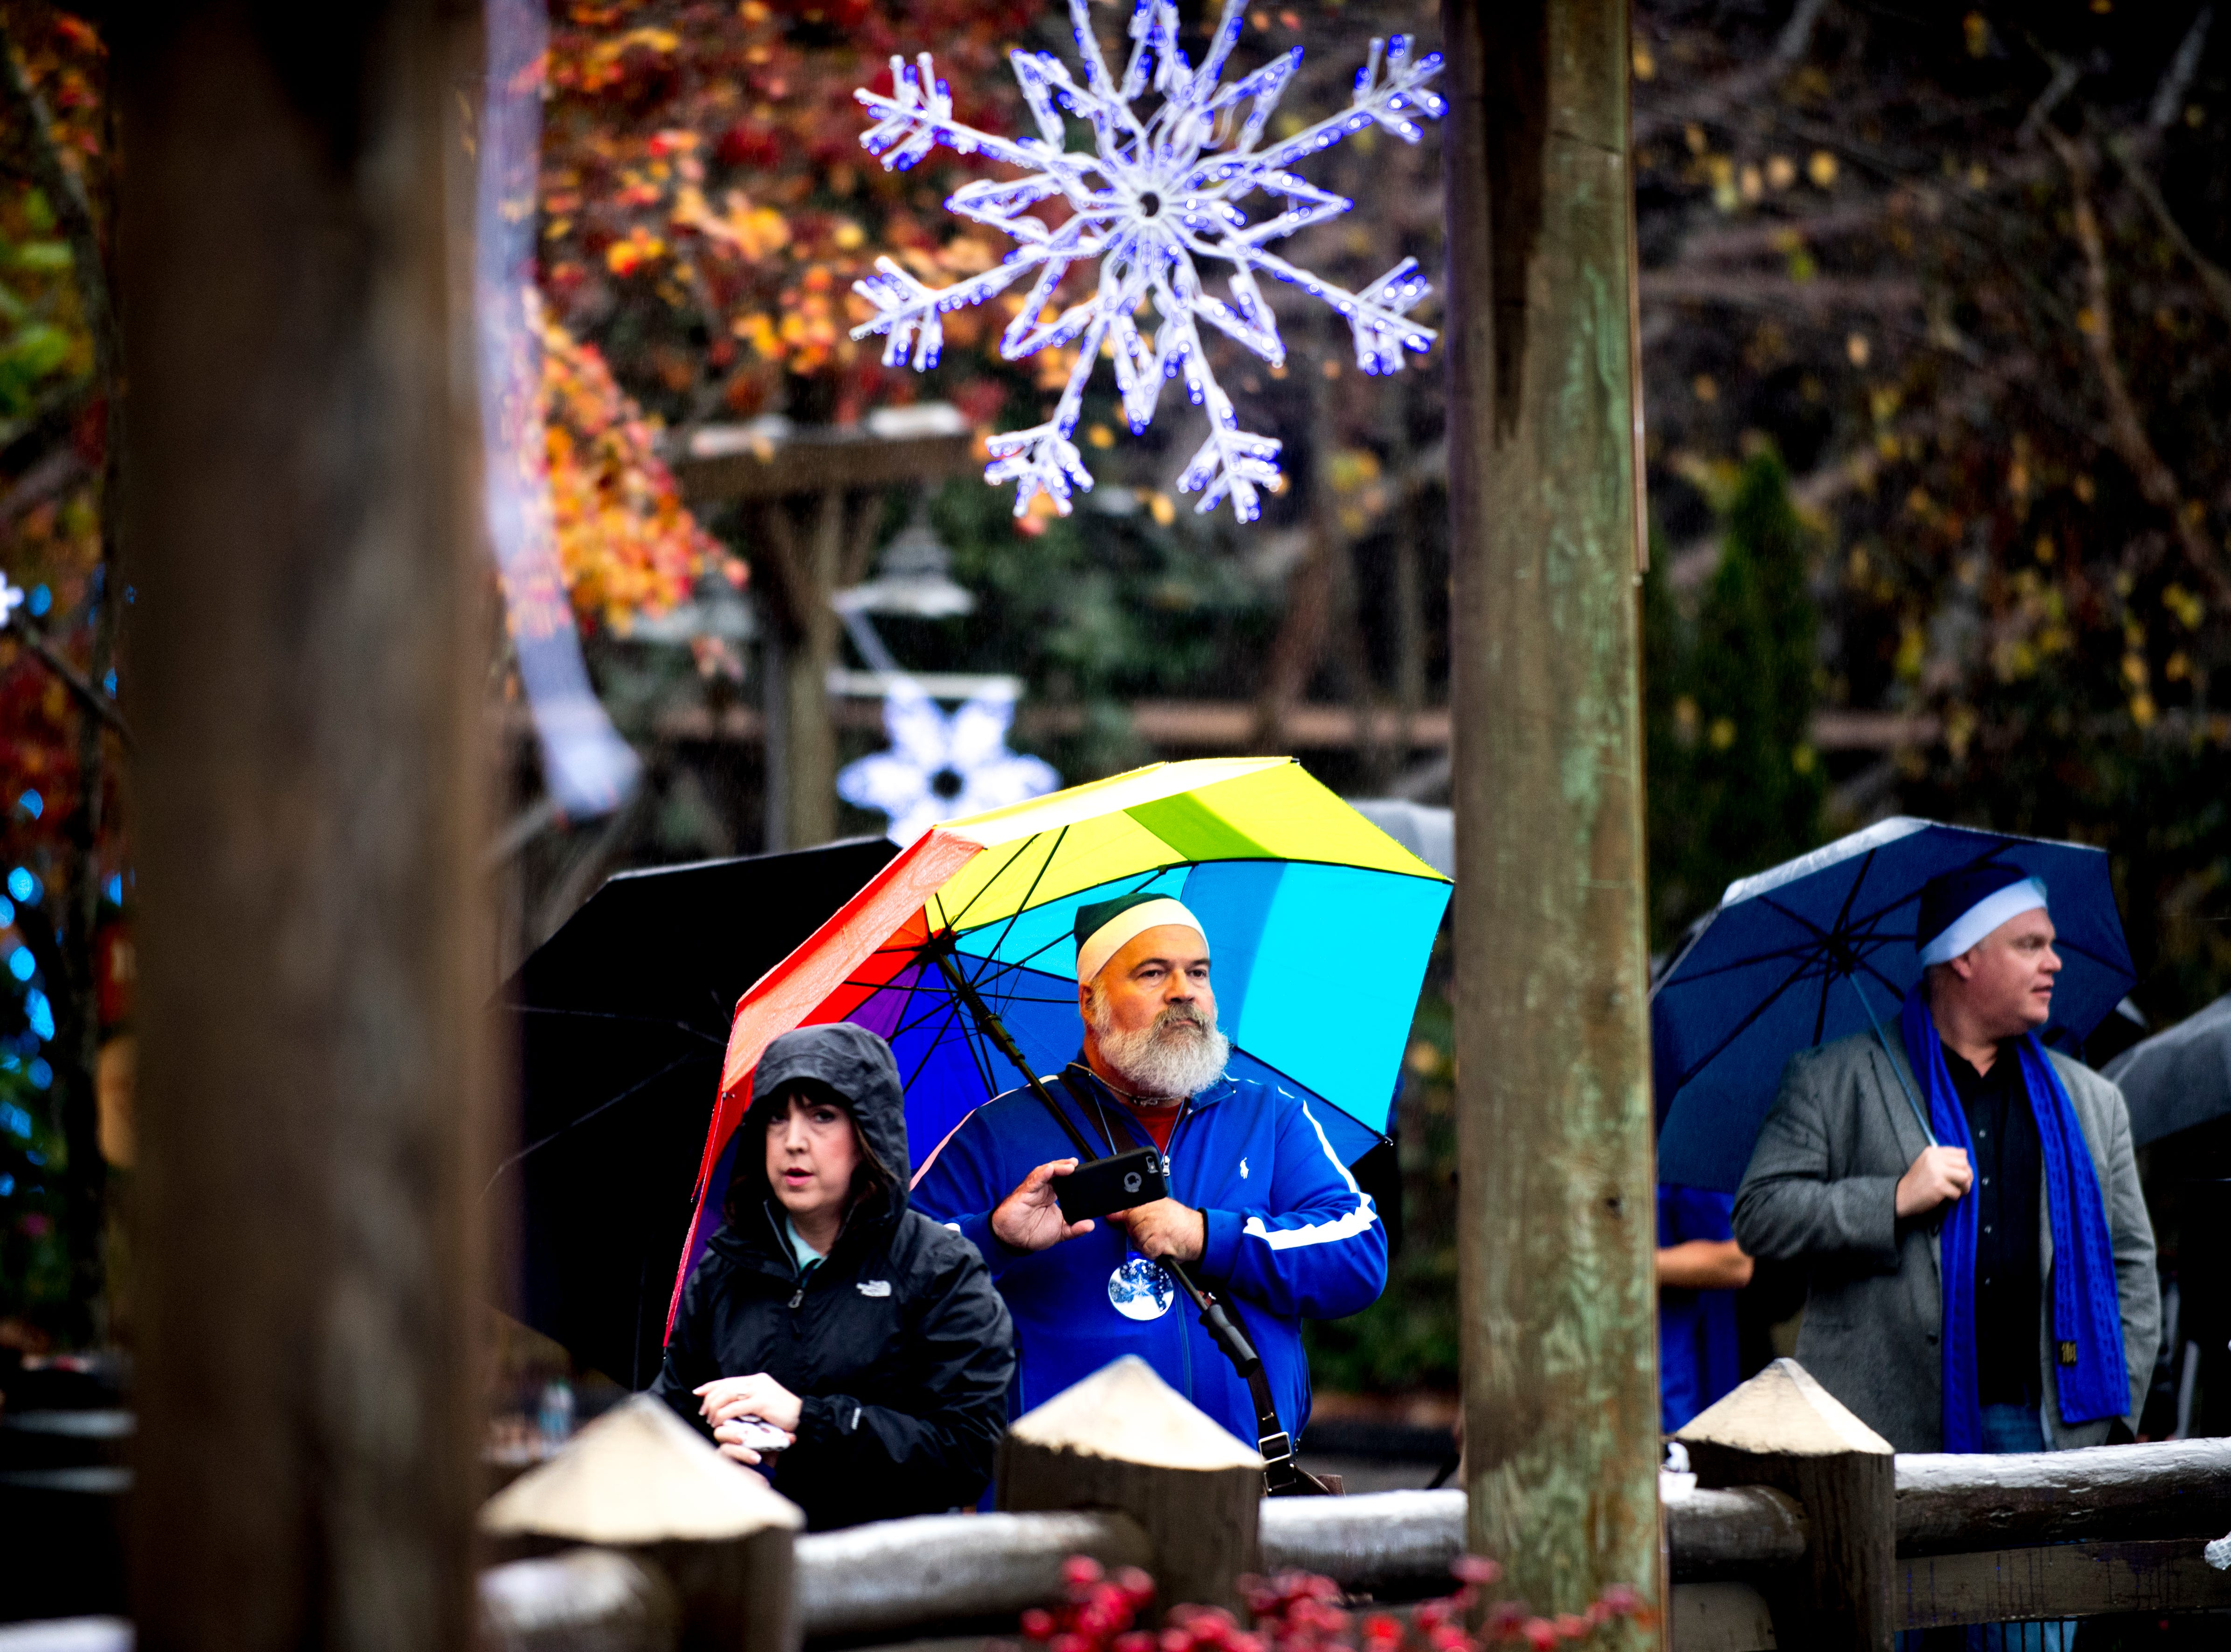 Visitors walk through the park during media day for a behind-the-scenes look of the Glacier Ridge light display at Dollywood in Pigeon Forge, Tennessee on Friday, November 9, 2018. Glacier Ridge features several new lighting displays, including a 50-ft. tall animated tree, the all new Arctic Passage and the Northern Lights.